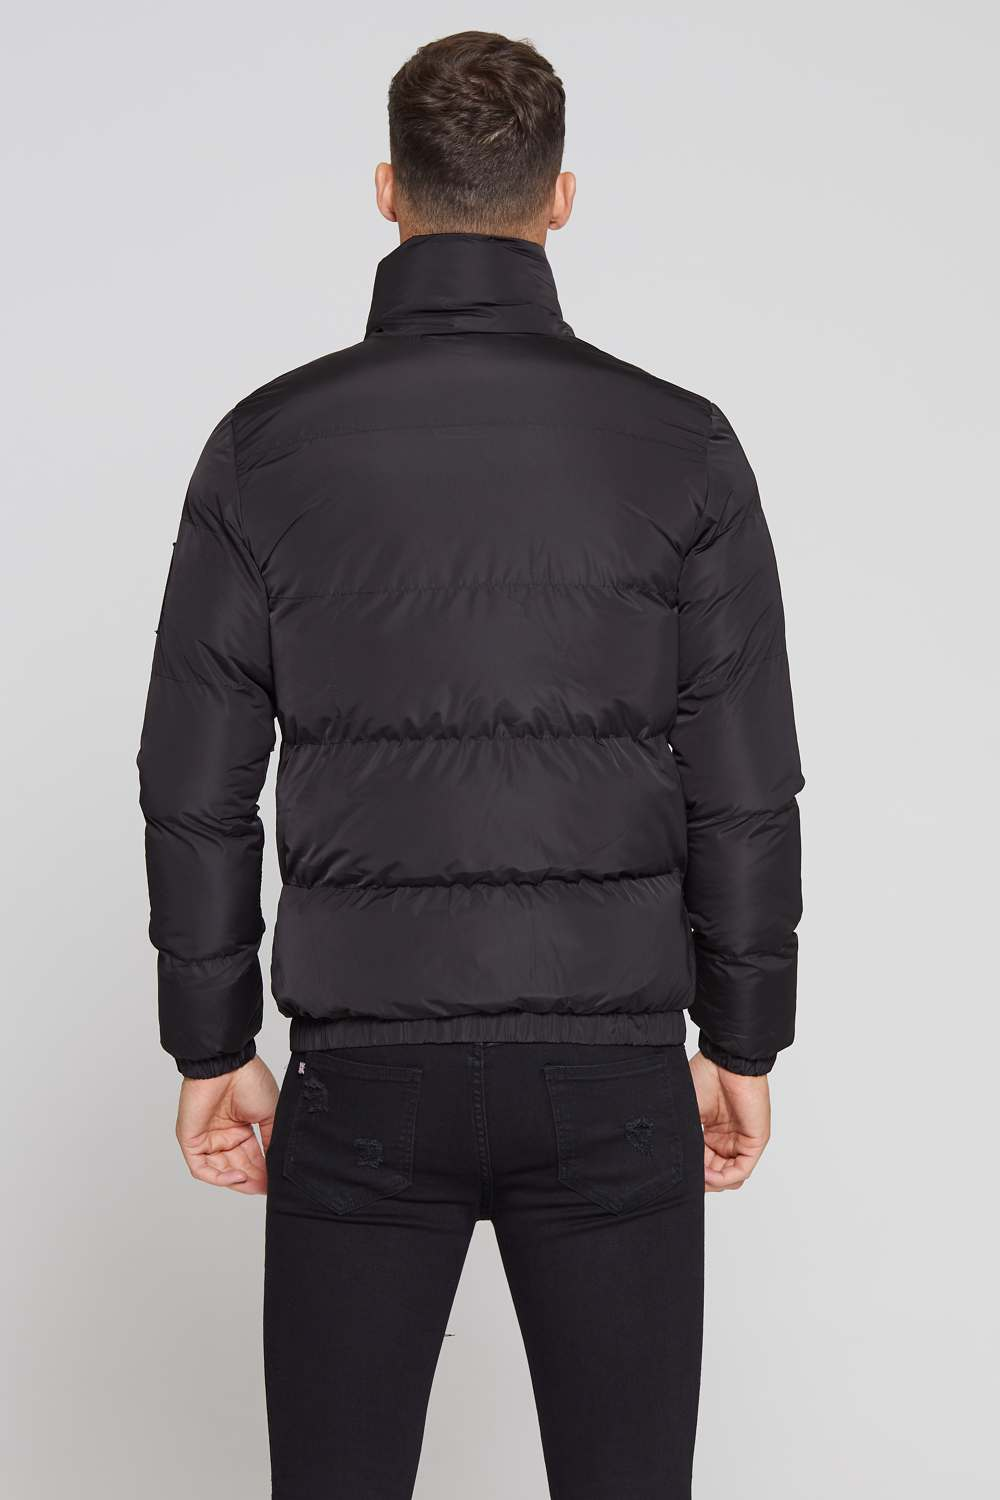 Good For Nothing Road Puffer Jacket - Black - 3